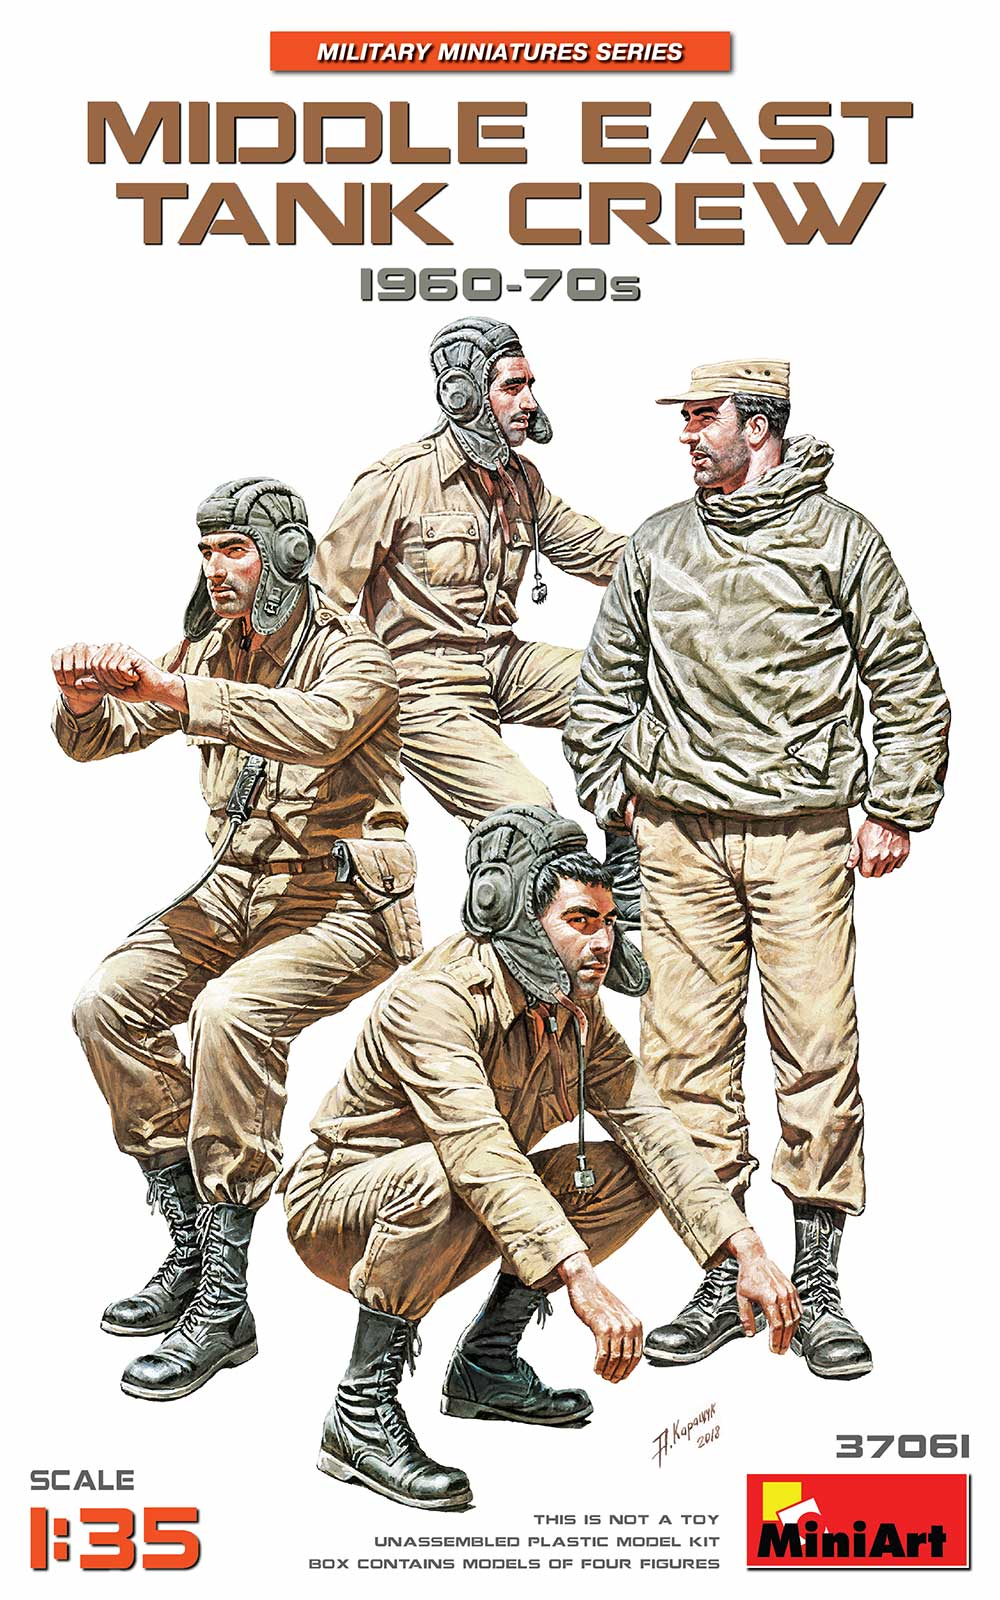 1/35 MIDDLE EAST TANK CREW 1960-70s 37061